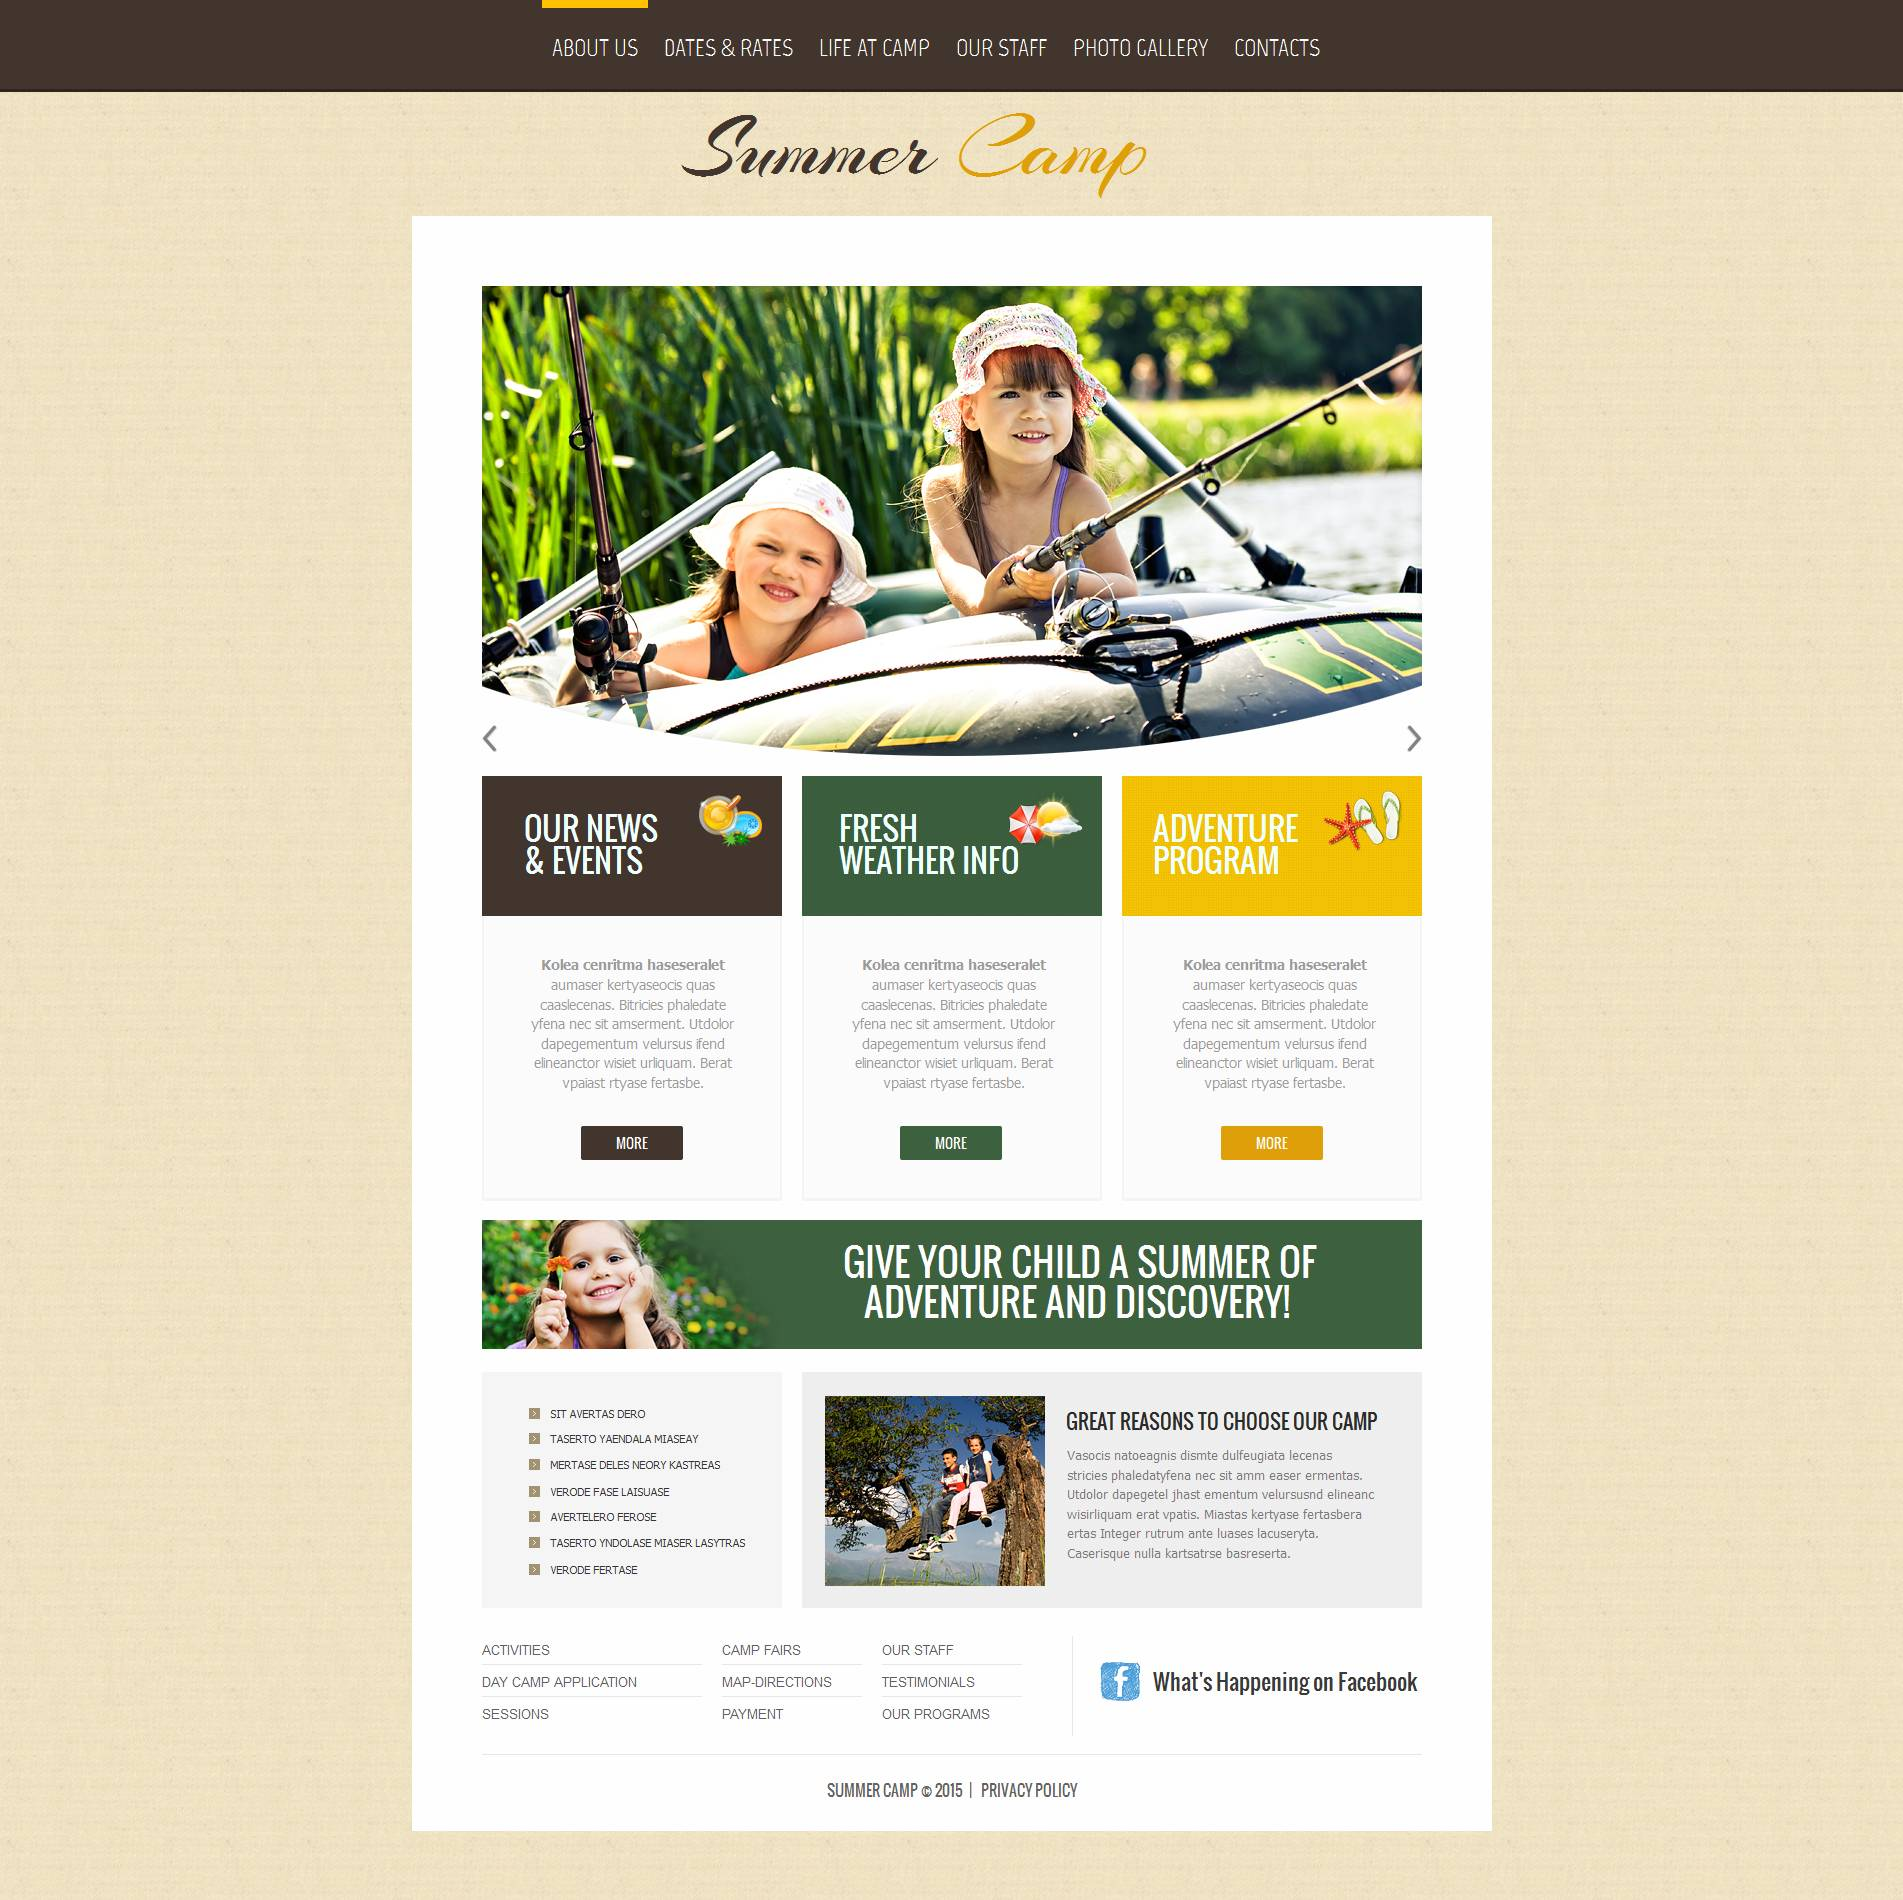 The Summer Camp Moto CMS HTML Design 53213, one of the best Moto CMS HTML templates of its kind (family), also known as summer camp Moto CMS HTML template, camper Moto CMS HTML template, buy Moto CMS HTML template, travel Moto CMS HTML template, trip Moto CMS HTML template, comfort Moto CMS HTML template, children and related with summer camp, camper, buy, travel, trip, comfort, children, etc.